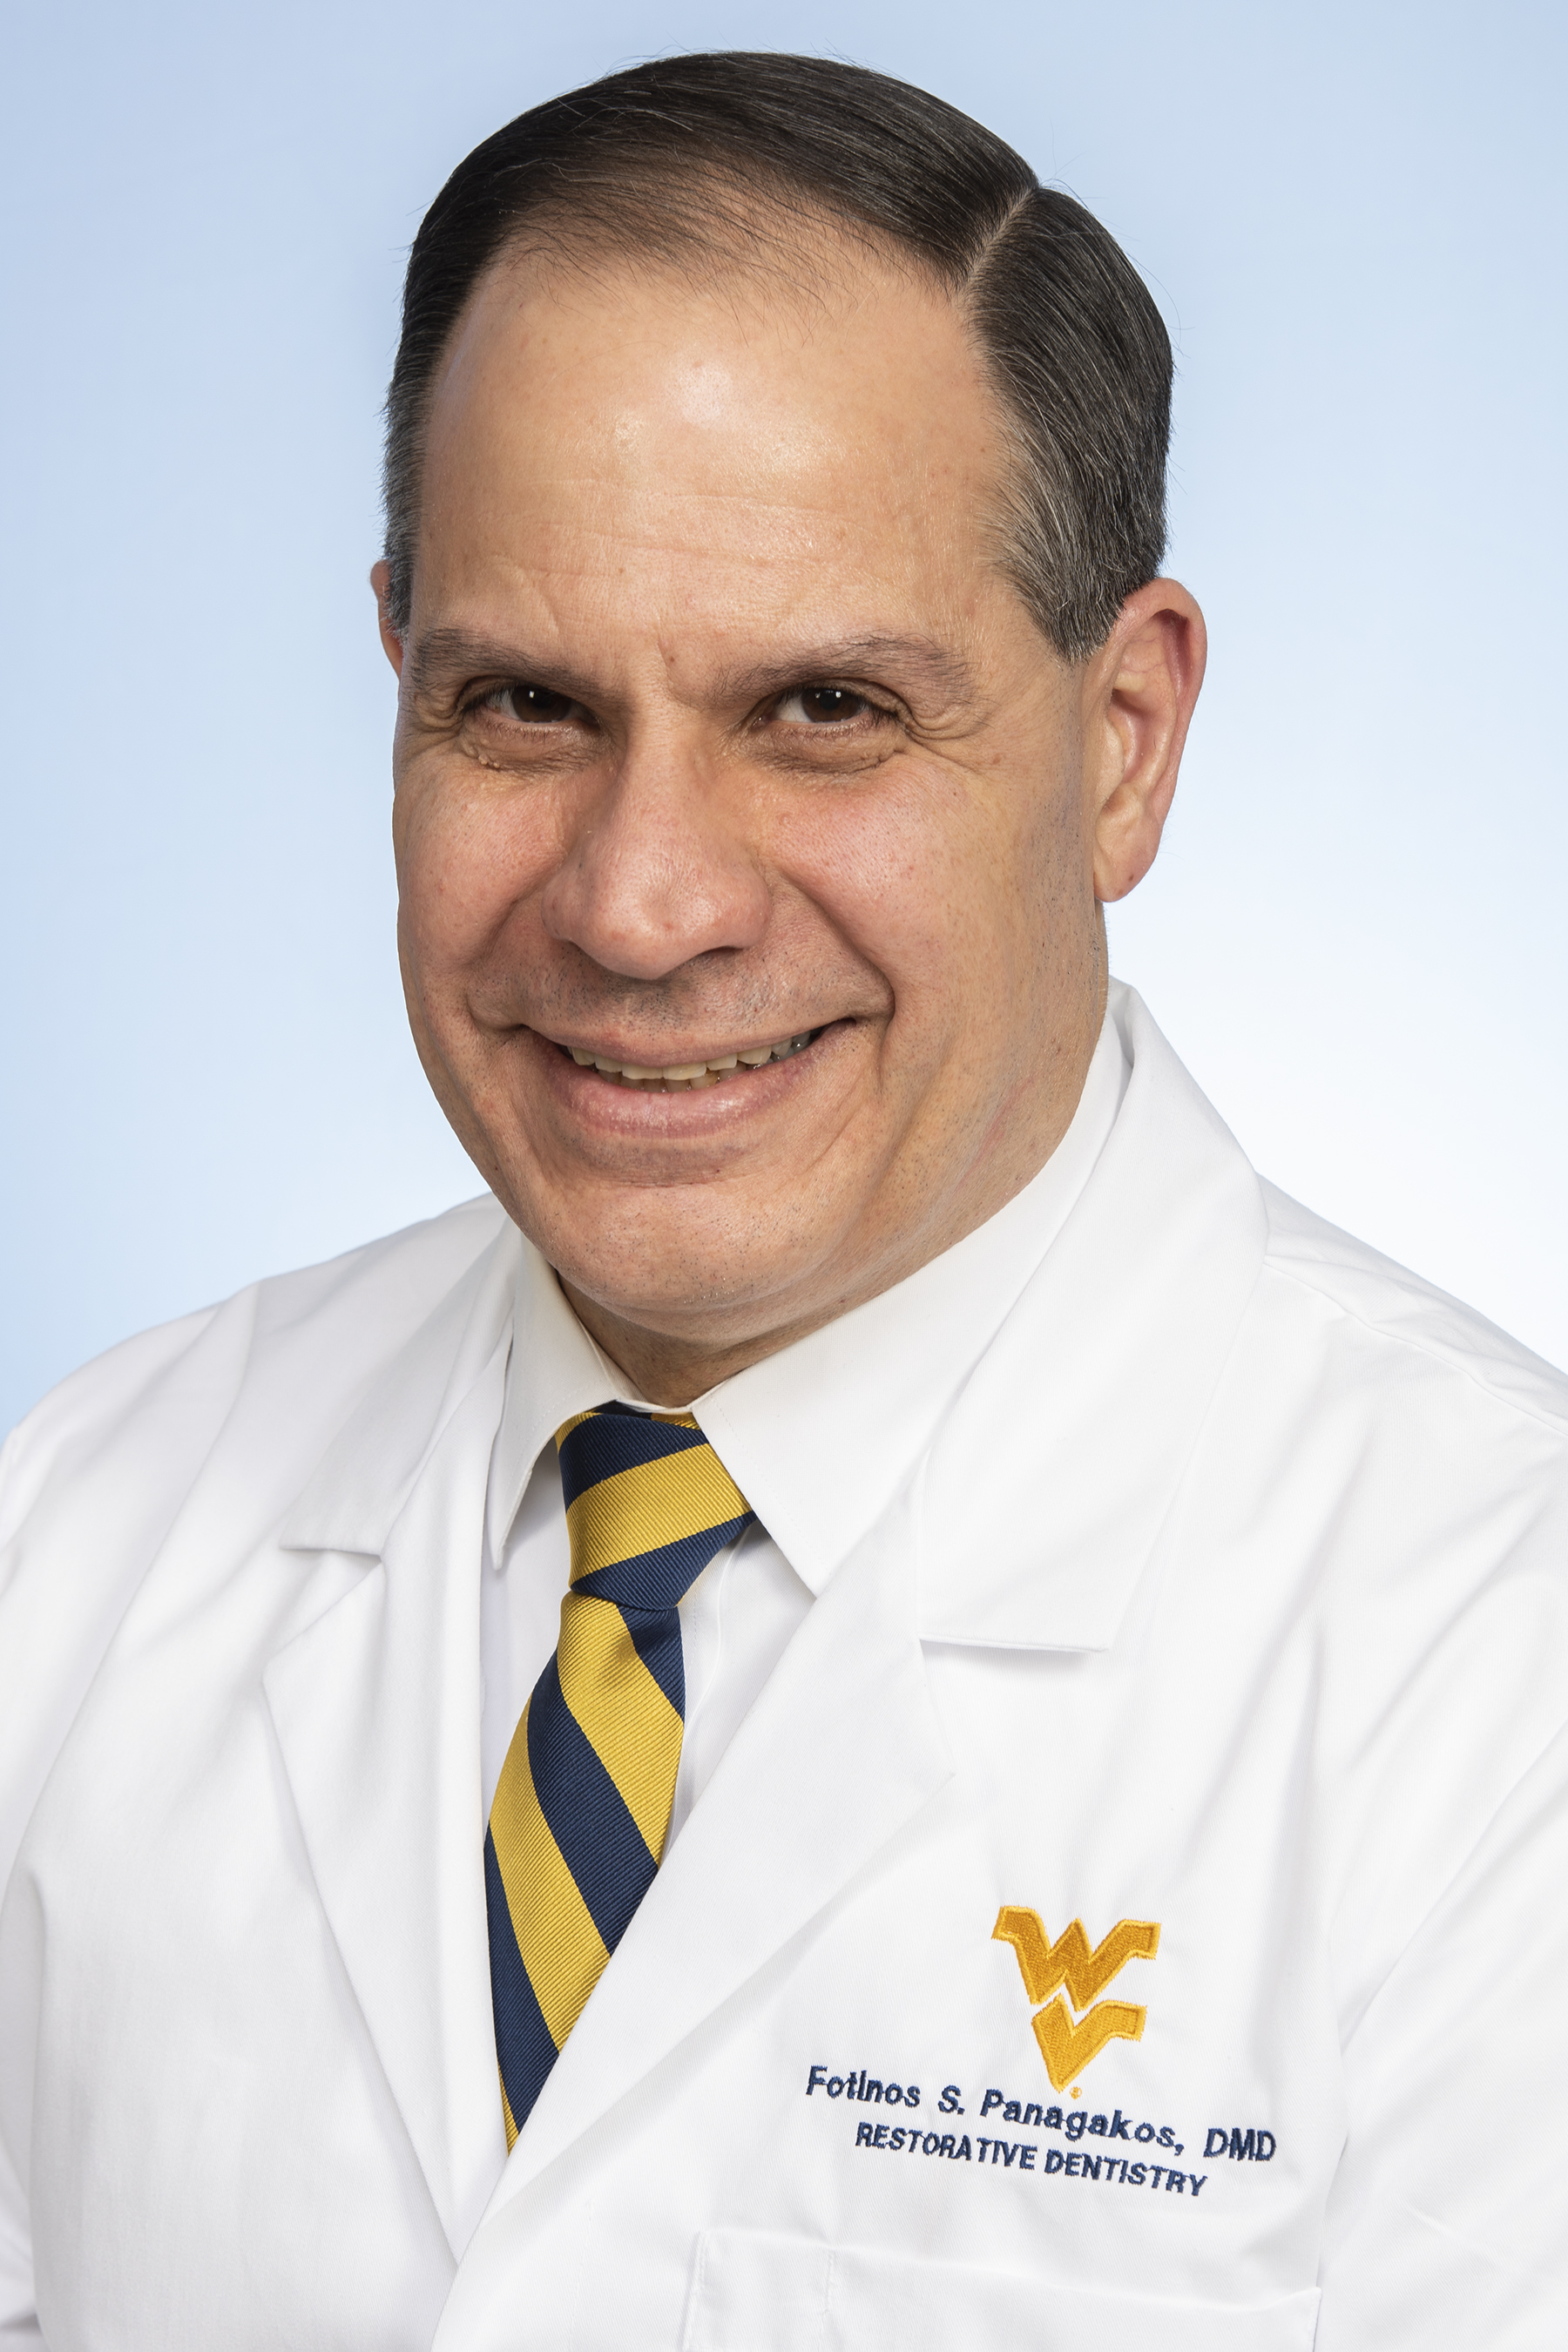 Dr. Fotinos Panagakos is the dental school's vice dean.